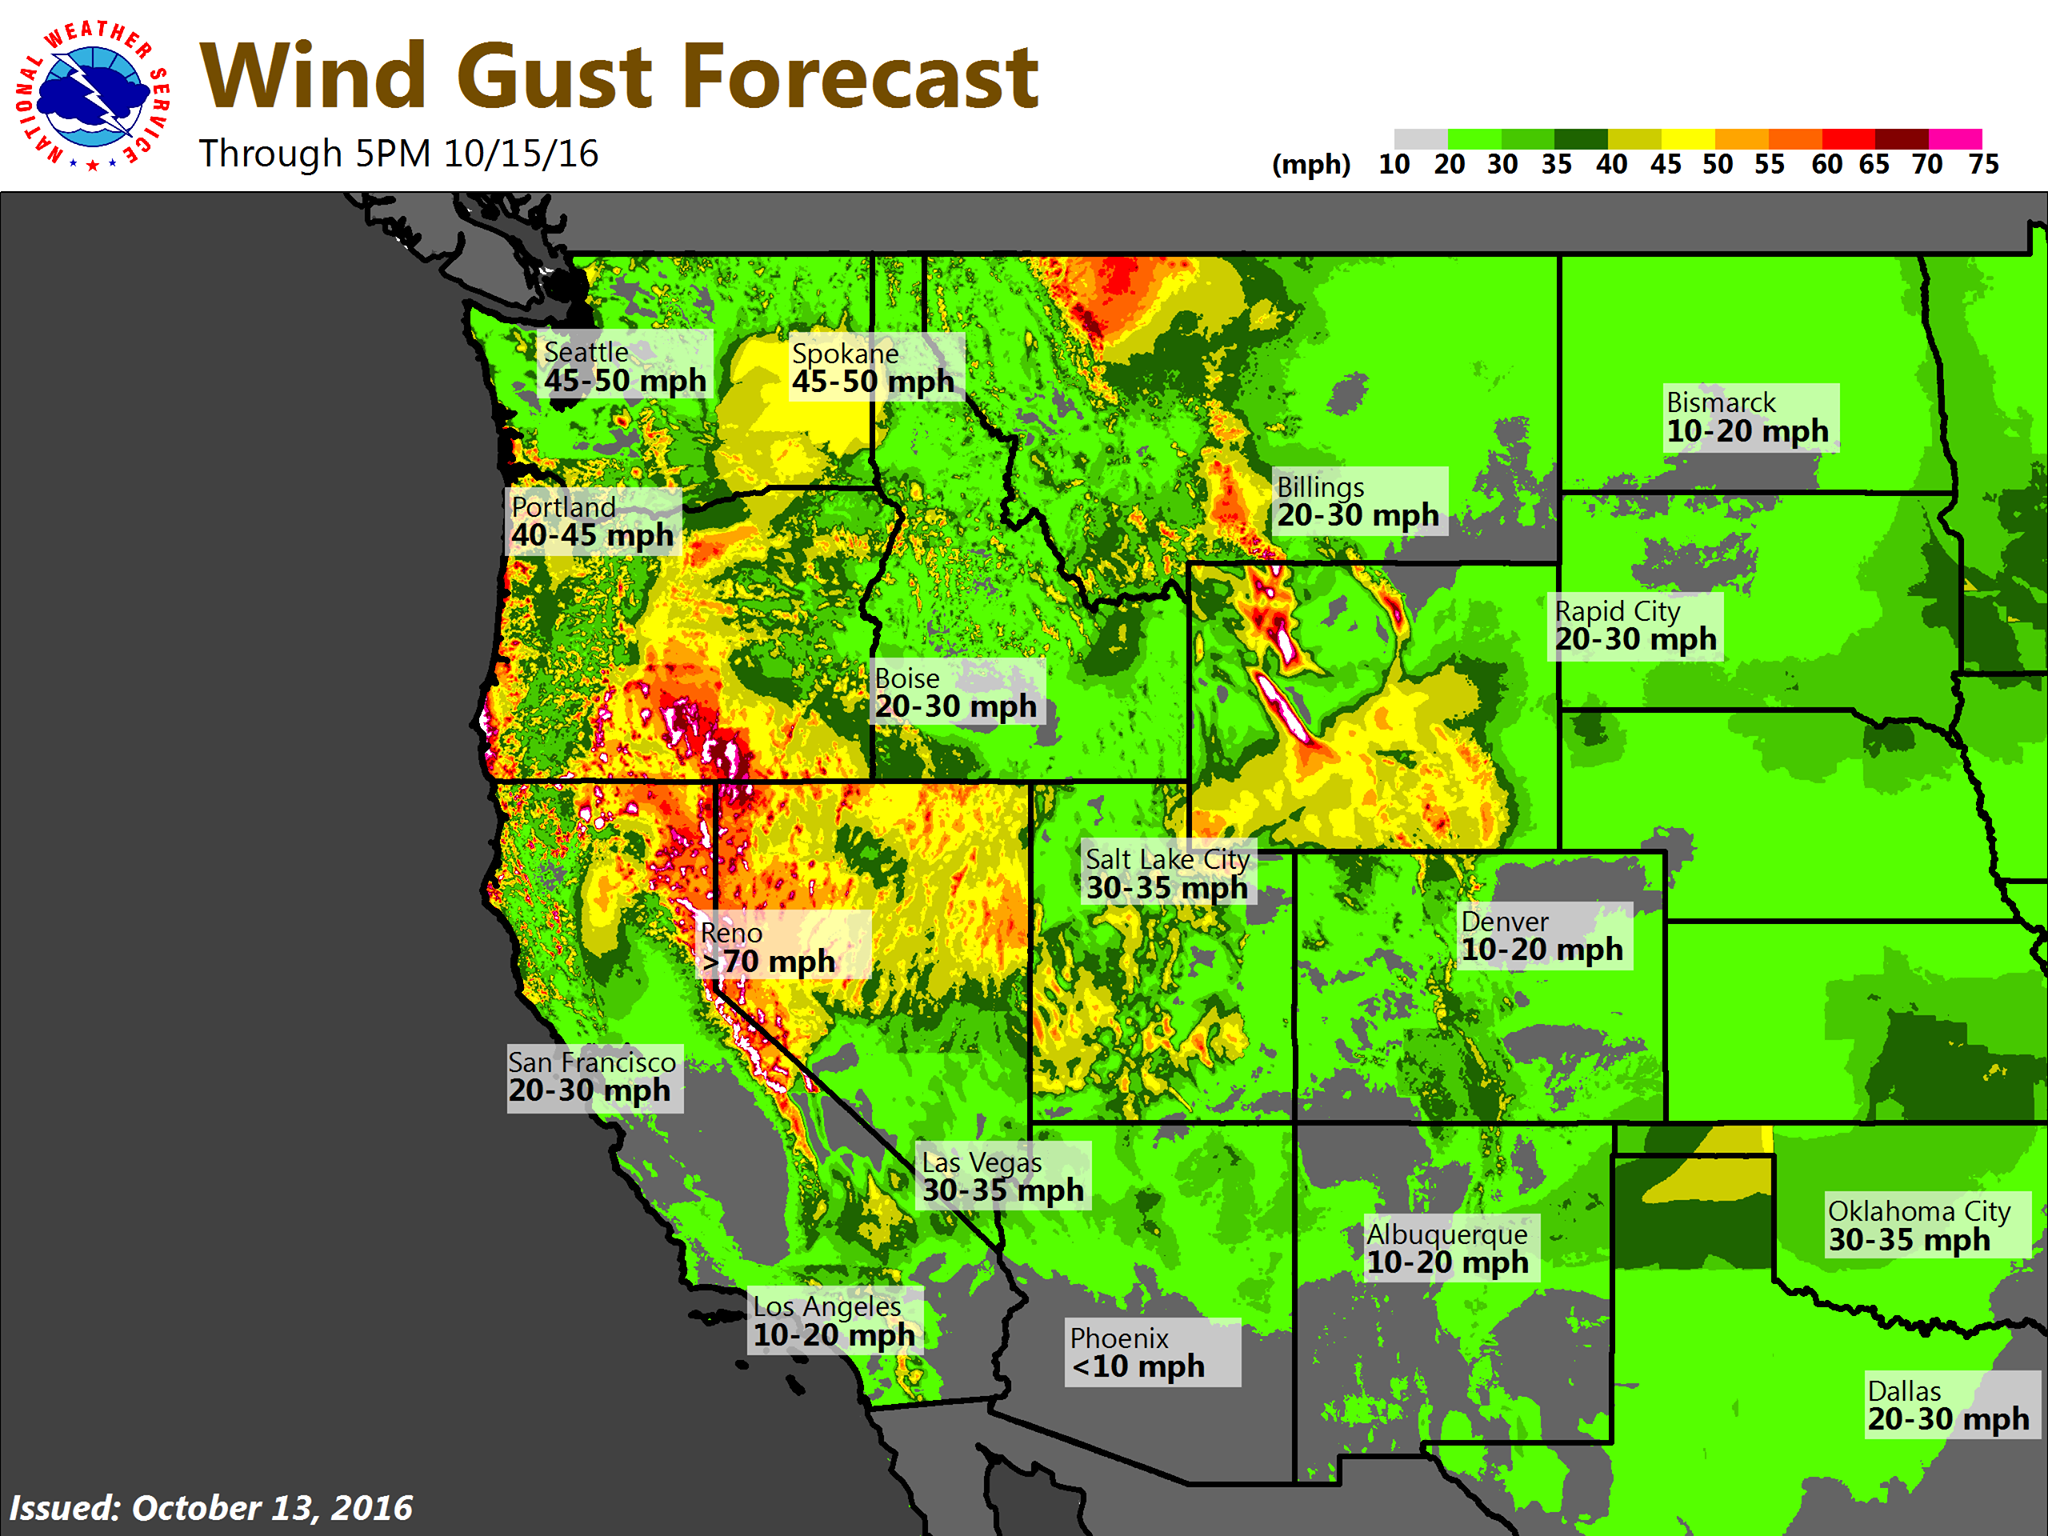 Big wind for the West this weekend. image: noaa, today